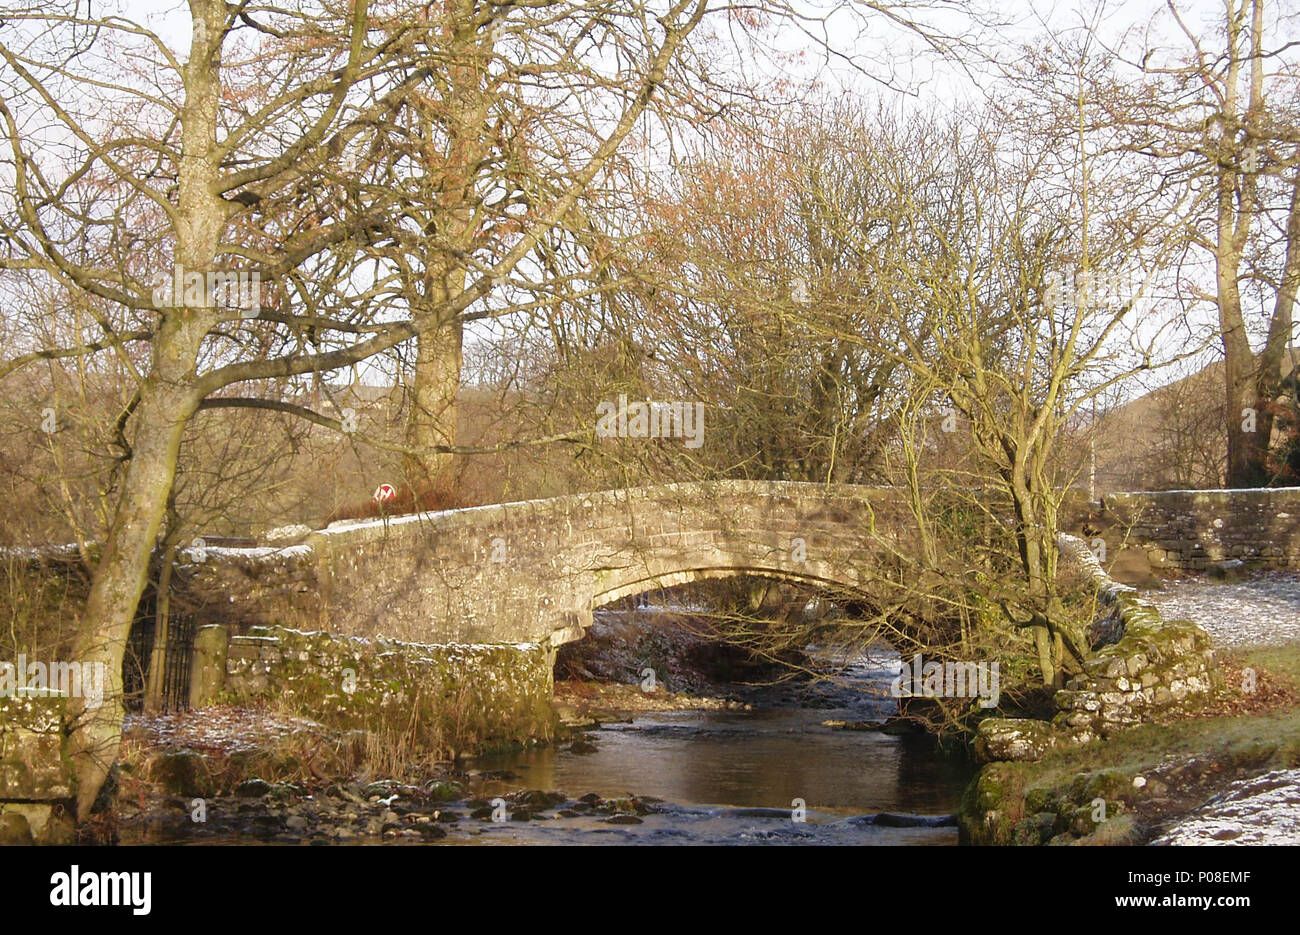 Aspects of the Yorkshire Dales - Stock Image